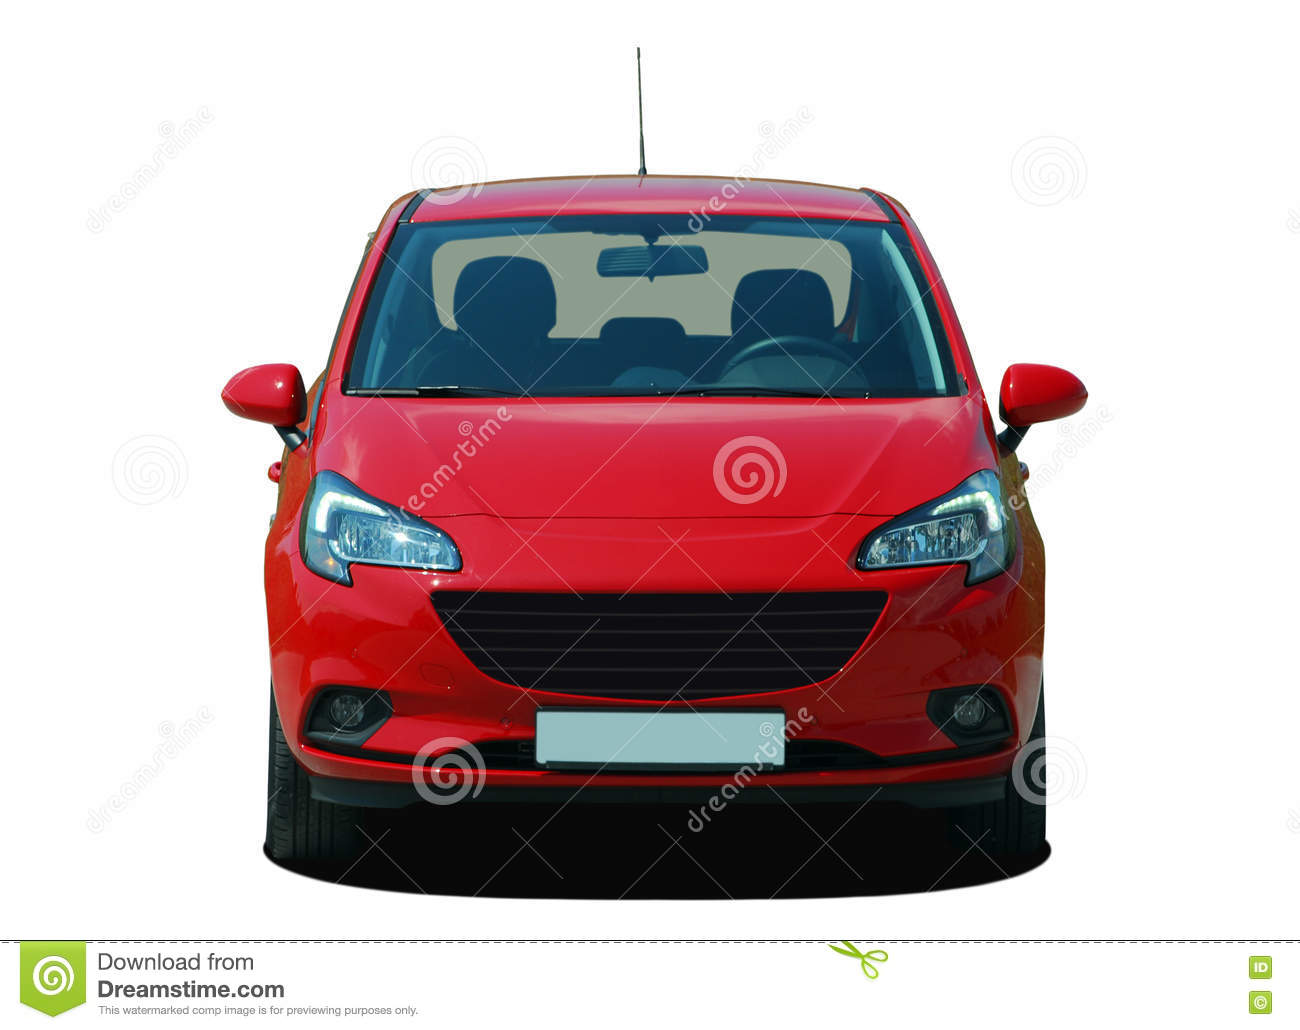 Red Car Stock Photo - Image: 80851126